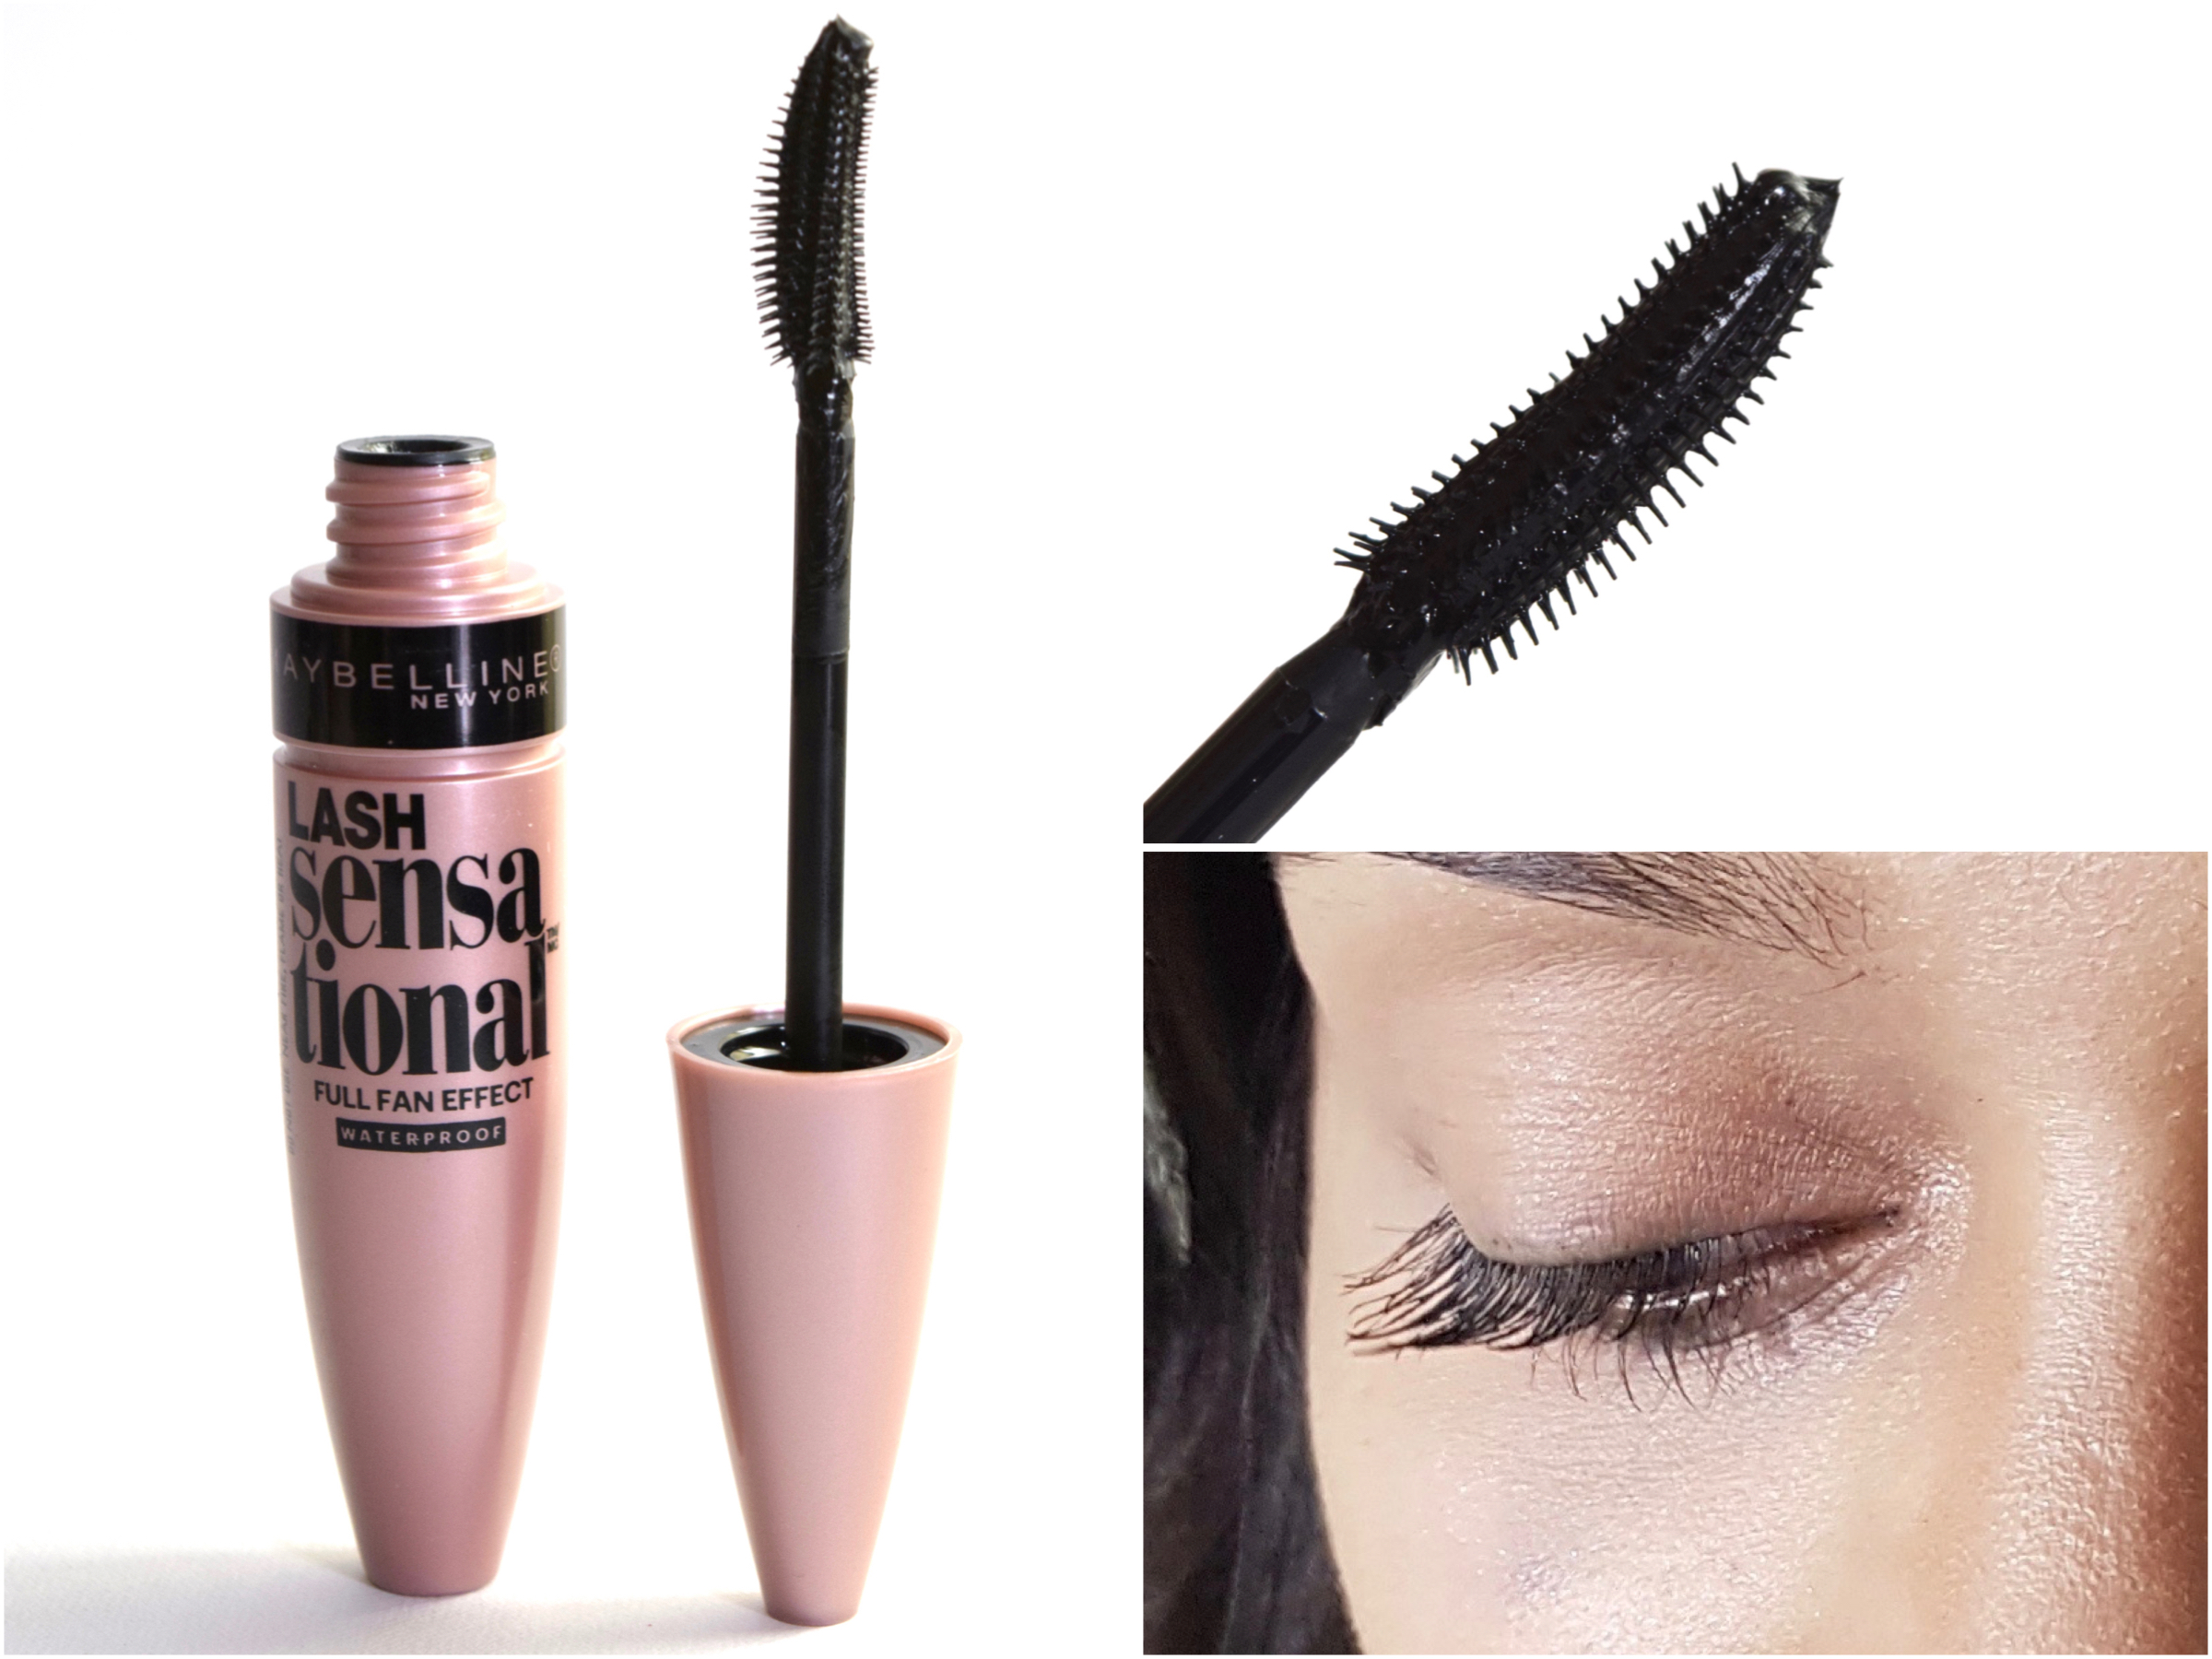 d4689f02d3e Maybelline Lash Sensational Mascara Review, Swatches